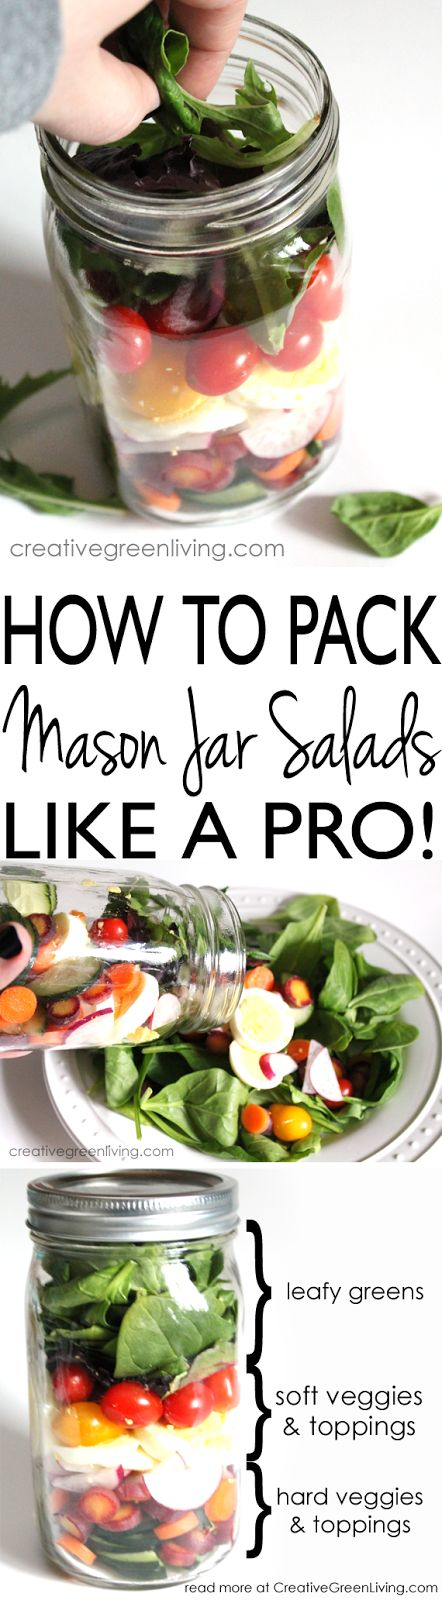 How to pack healthy mason jar salad like a pro. Perfect make ahead lunch or dinner for 21 Day Fix, Whole 30 or Paleo.